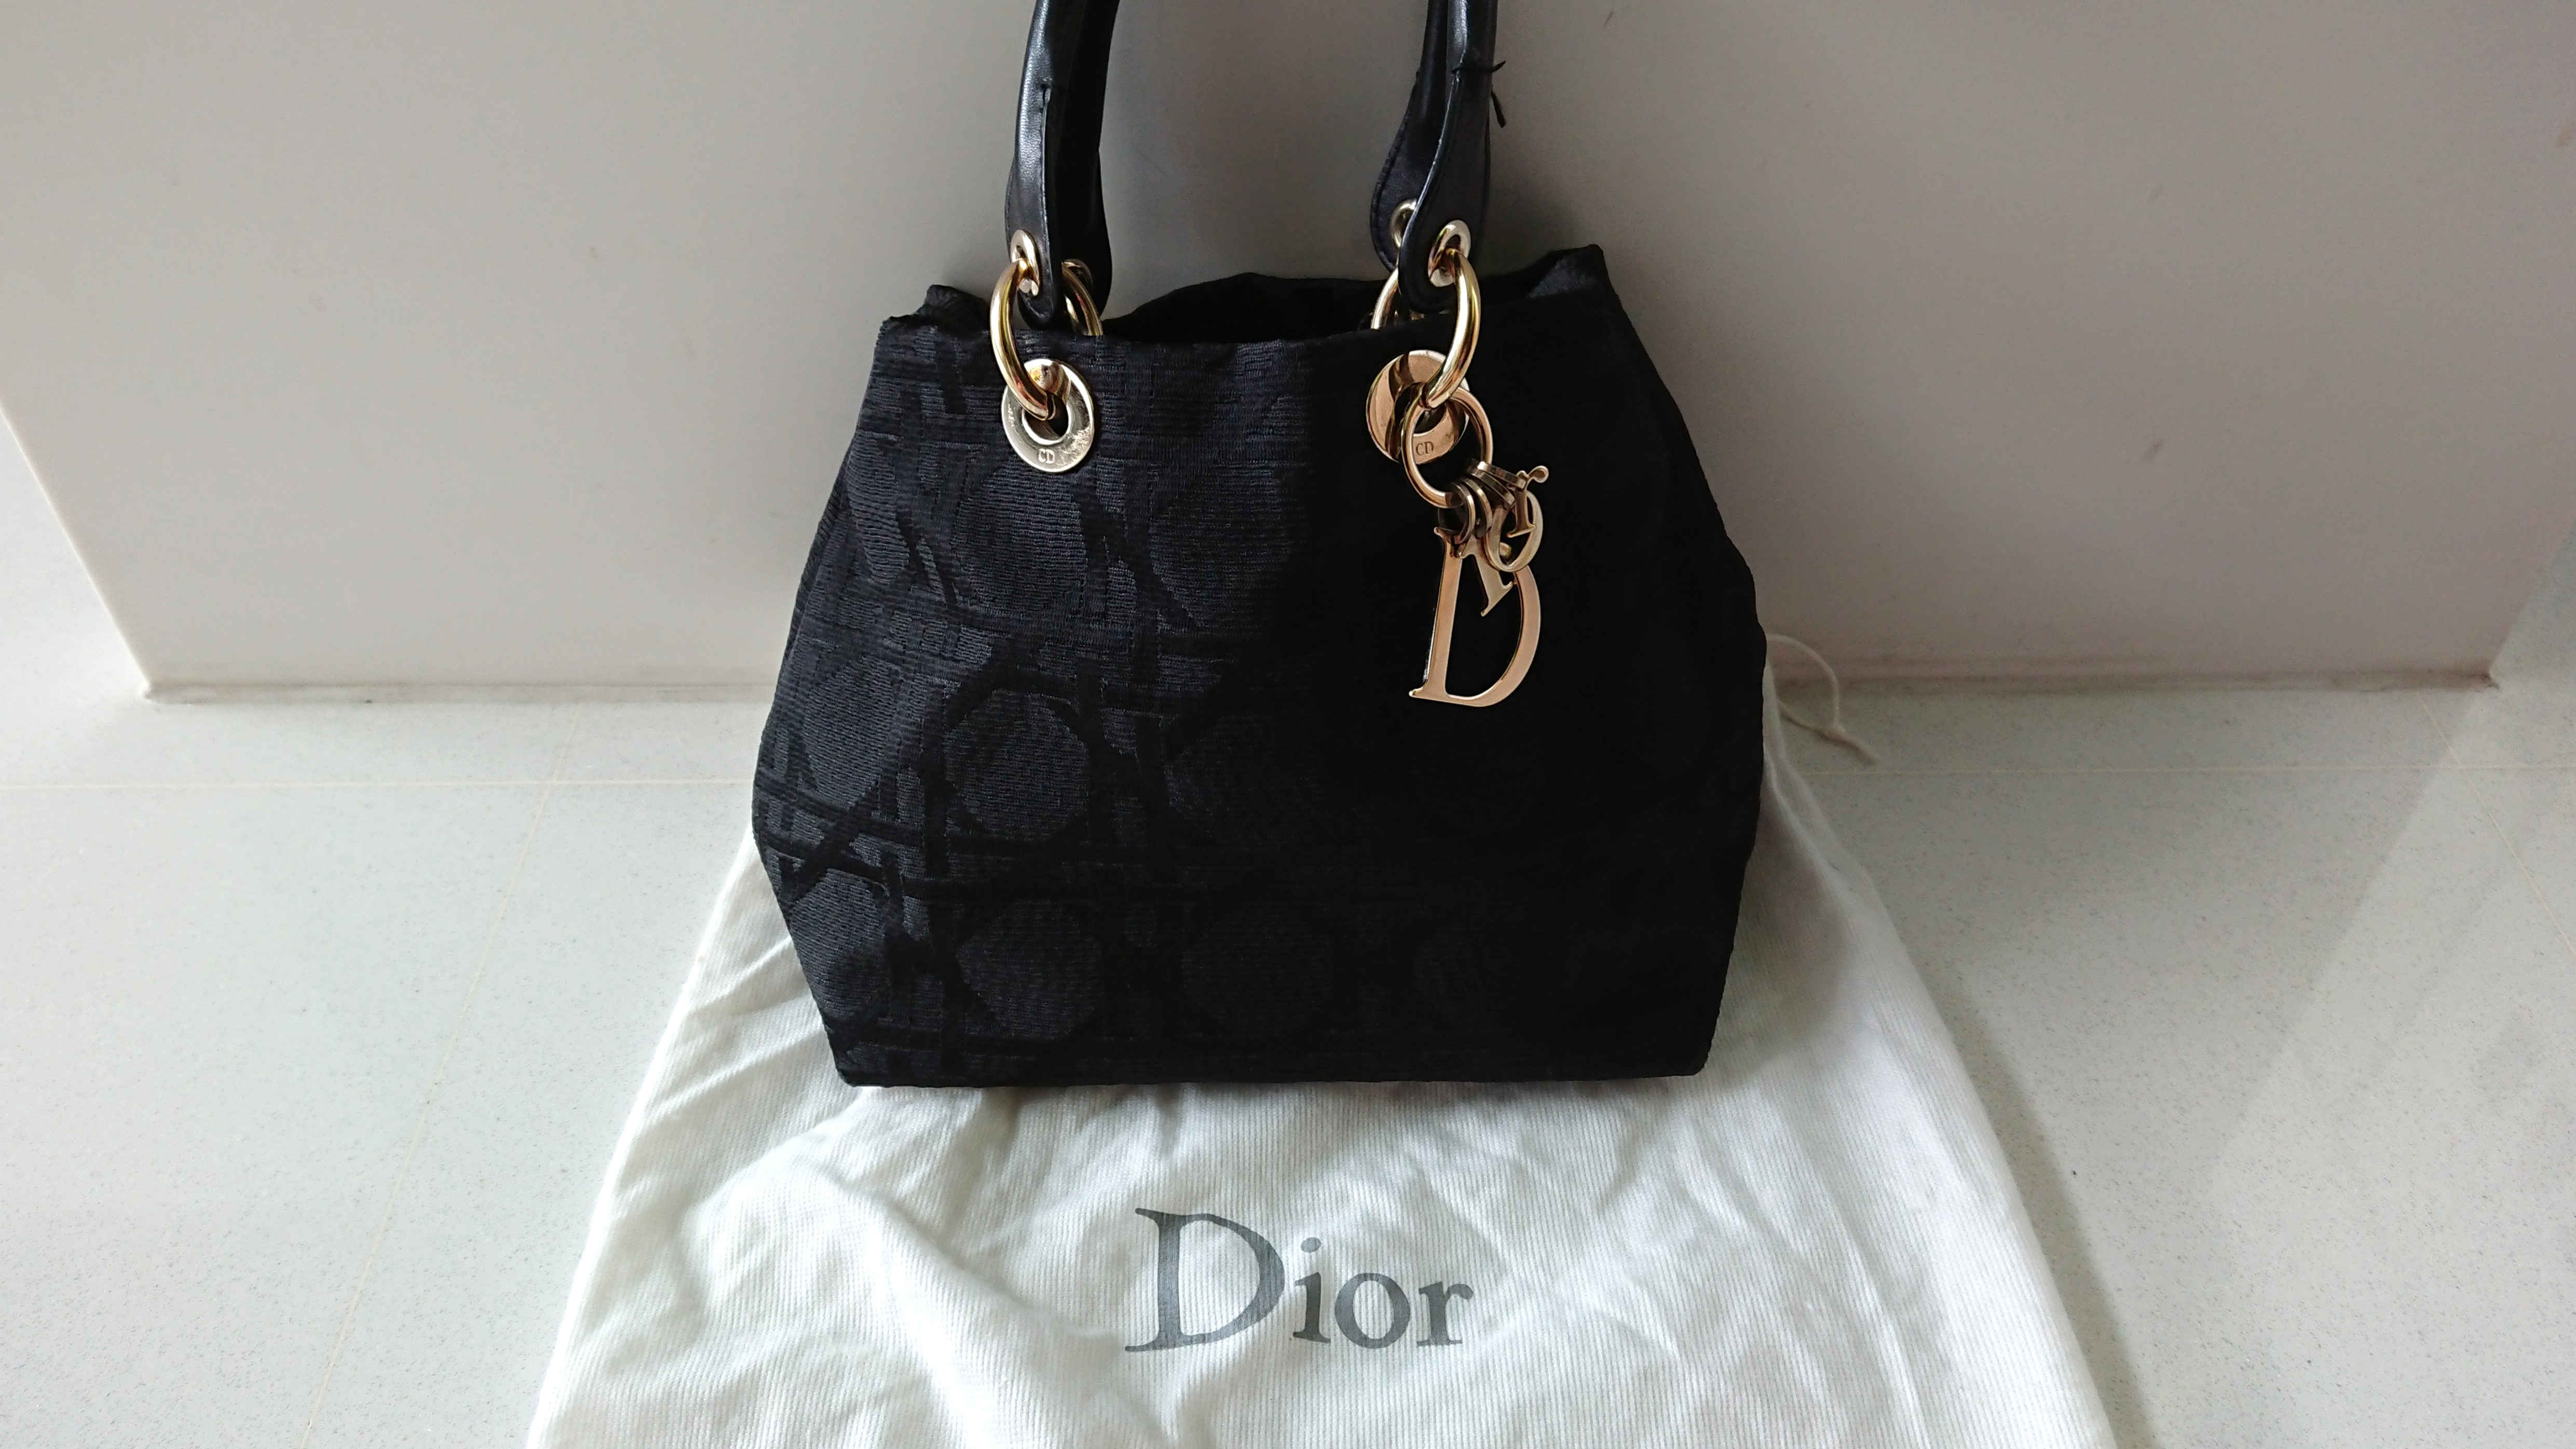 Christian Dior Lady Dior handbag in Black canvas Cannage in Gold ... 421d87e892668